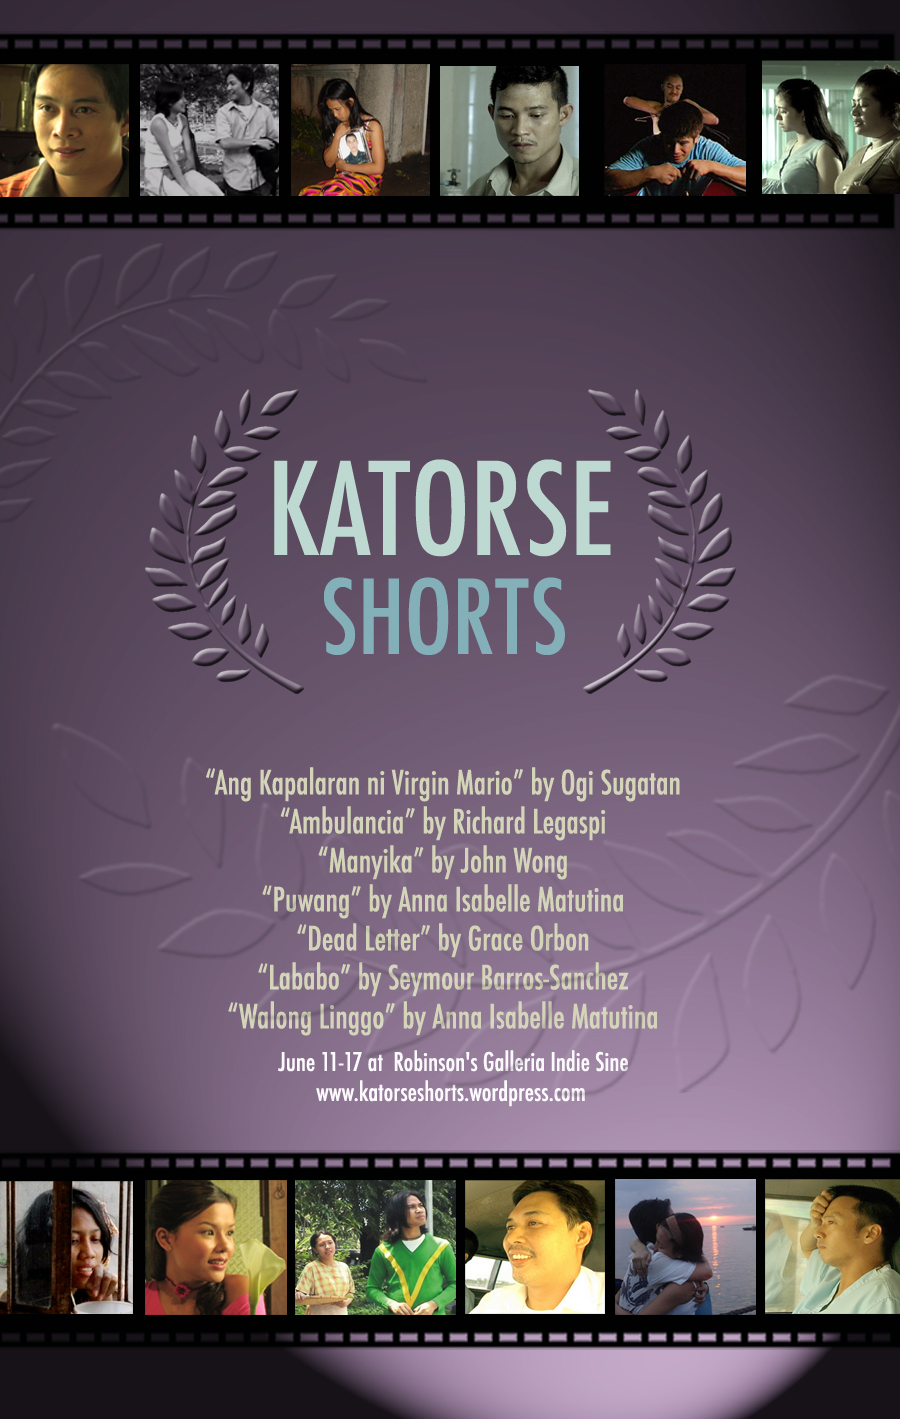 The poster for Katorse Shorts